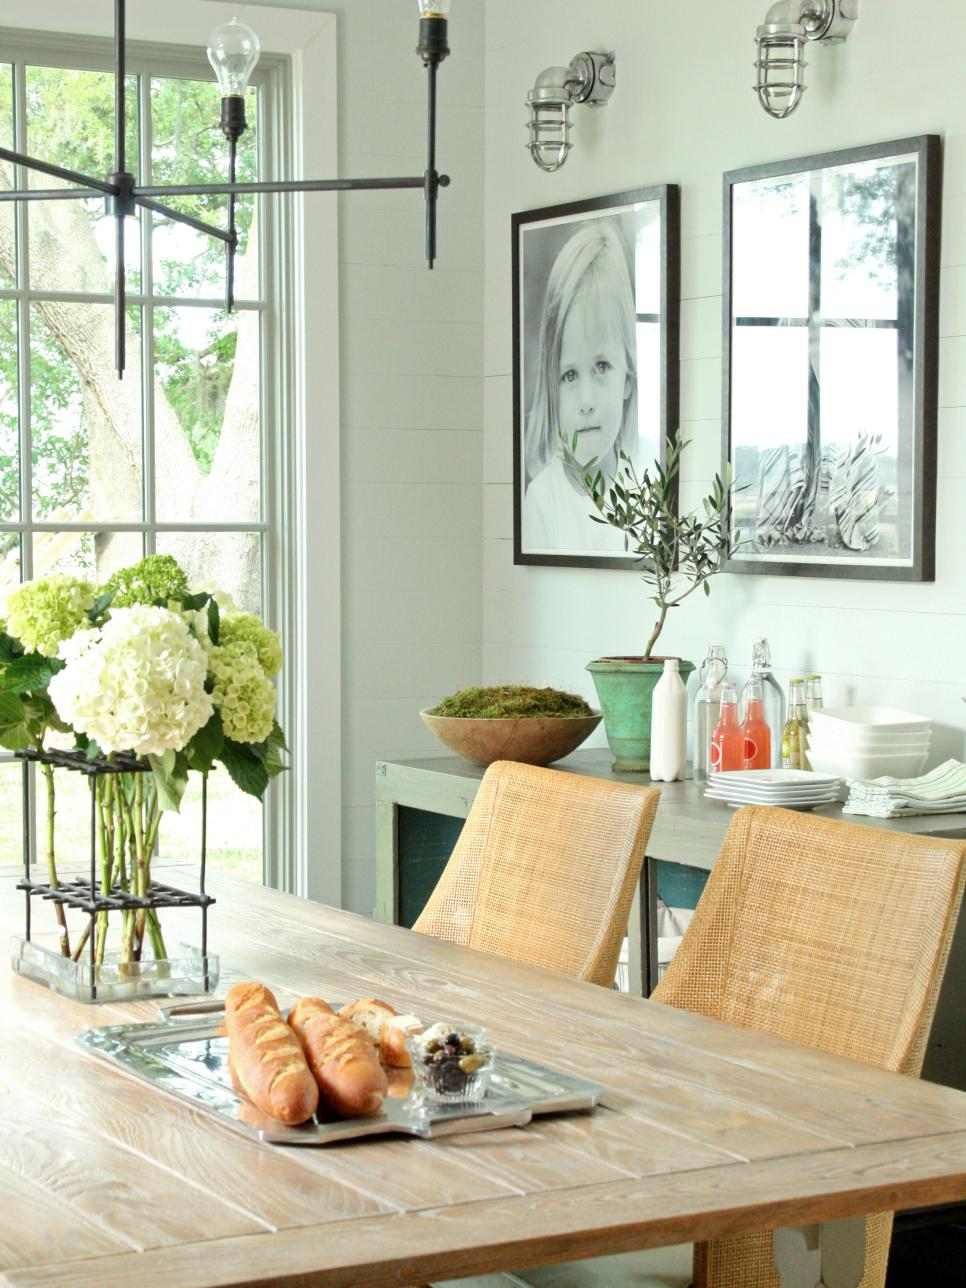 15 dining room decorating ideas hgtv for Decorating your dining table